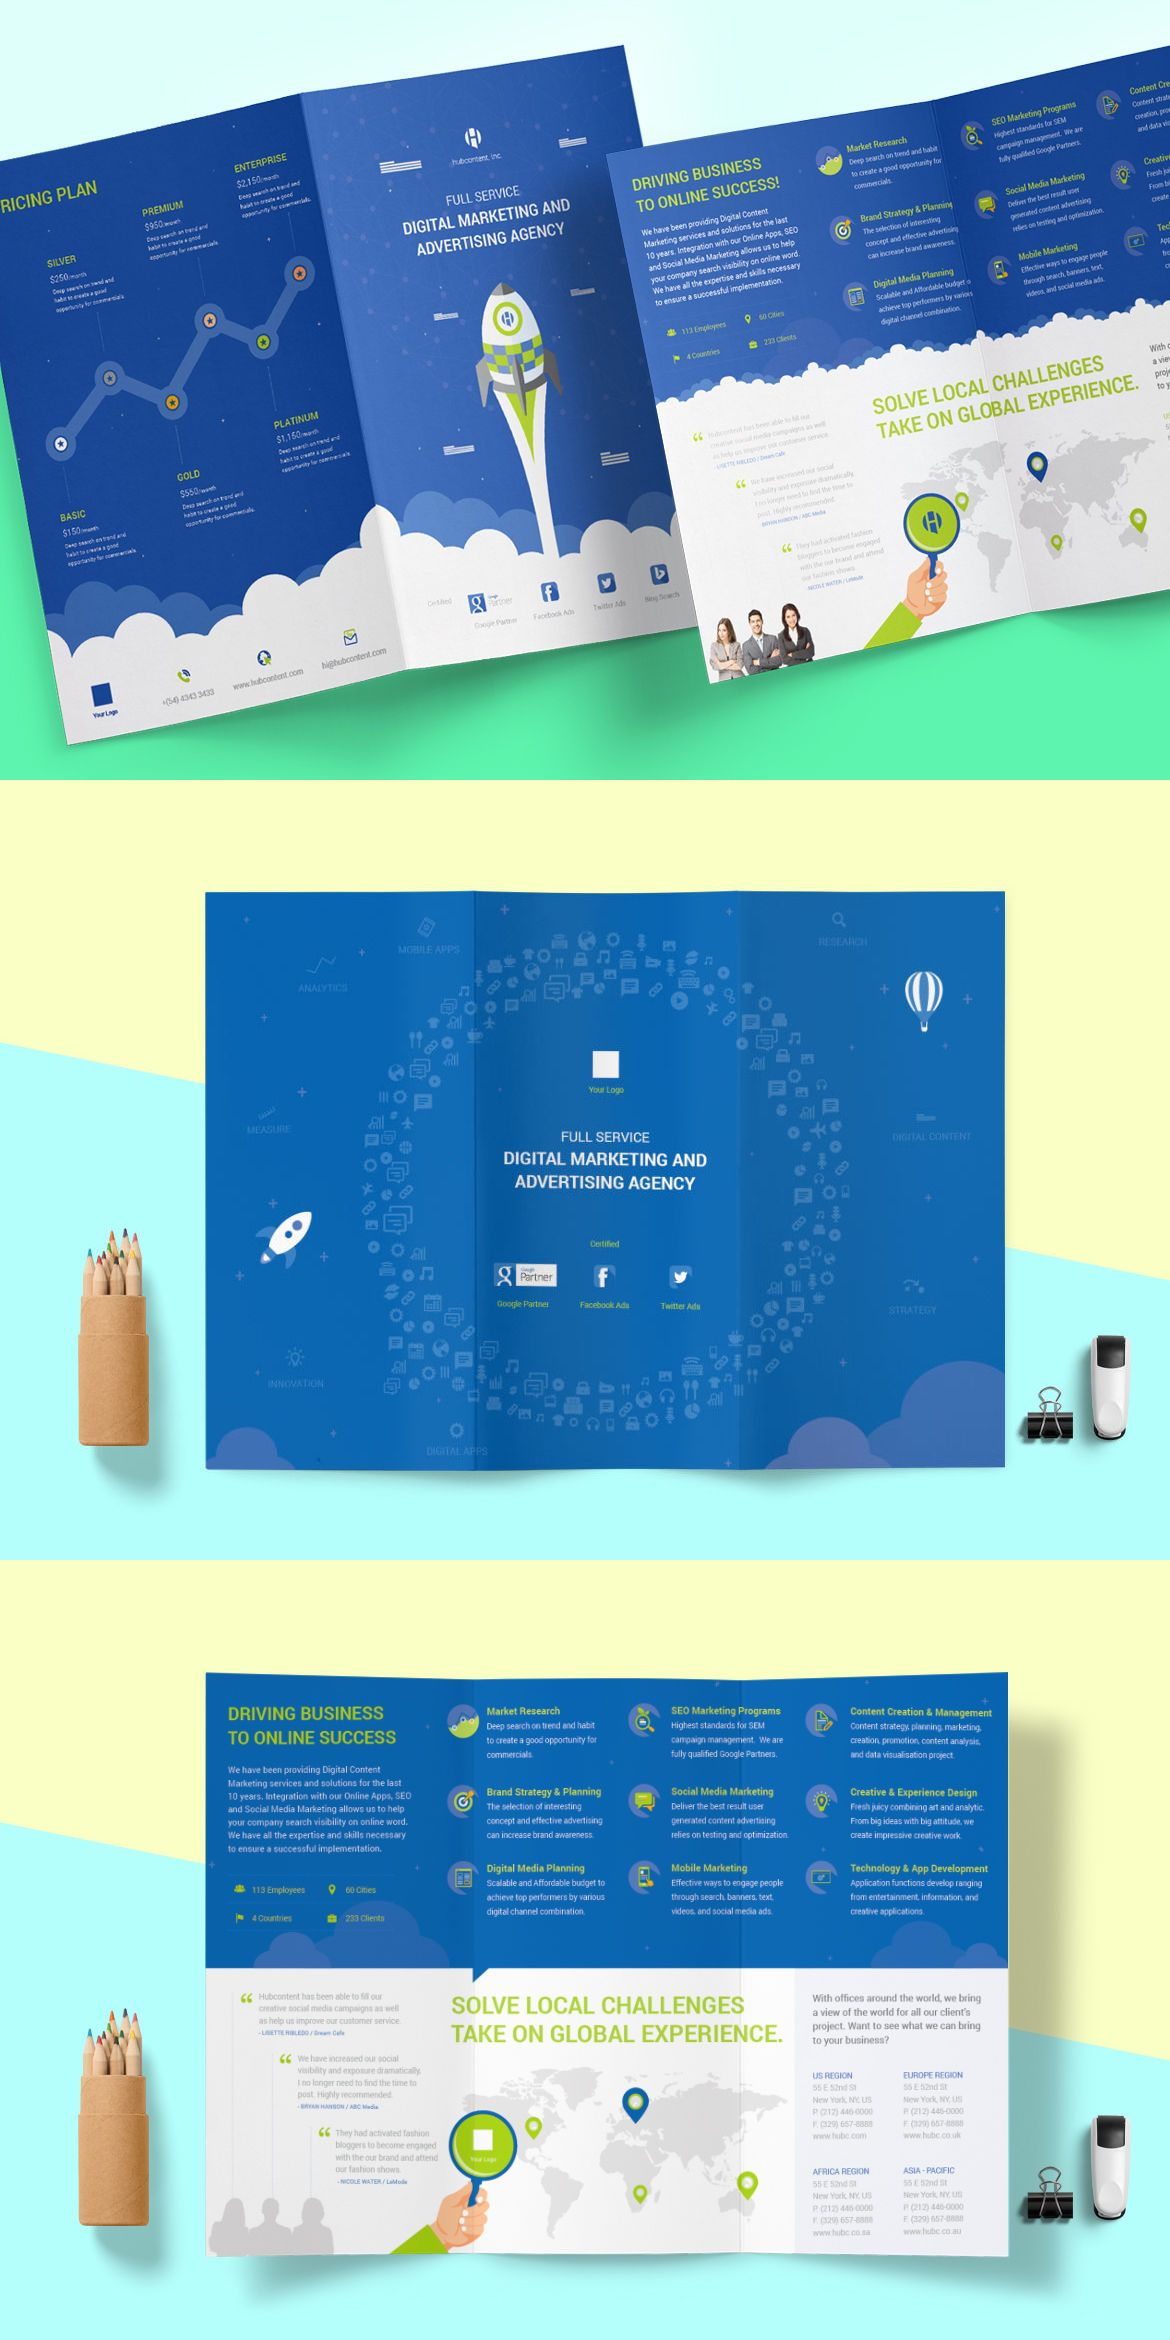 electronic brochure templates - digital marketing advertising agency brochure template